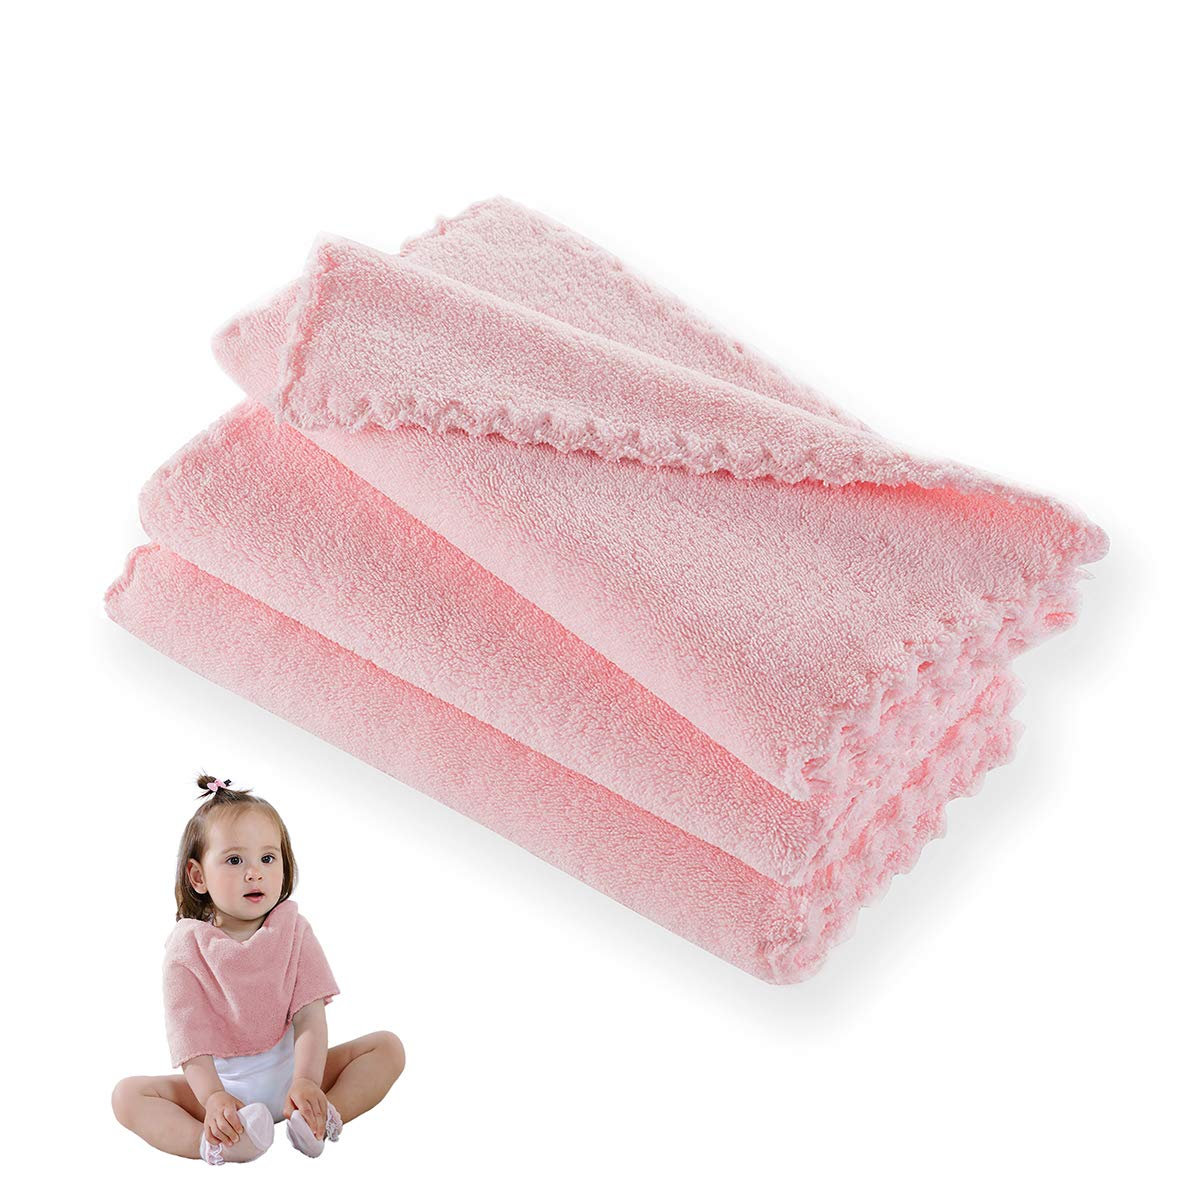 Baby Washcloths Pack of 3 Premium Extra Soft & Highly Absorbent Face Towels 10 x 20 Inches Reusable Wipes Perfect Cloth for All Families – Light Pink